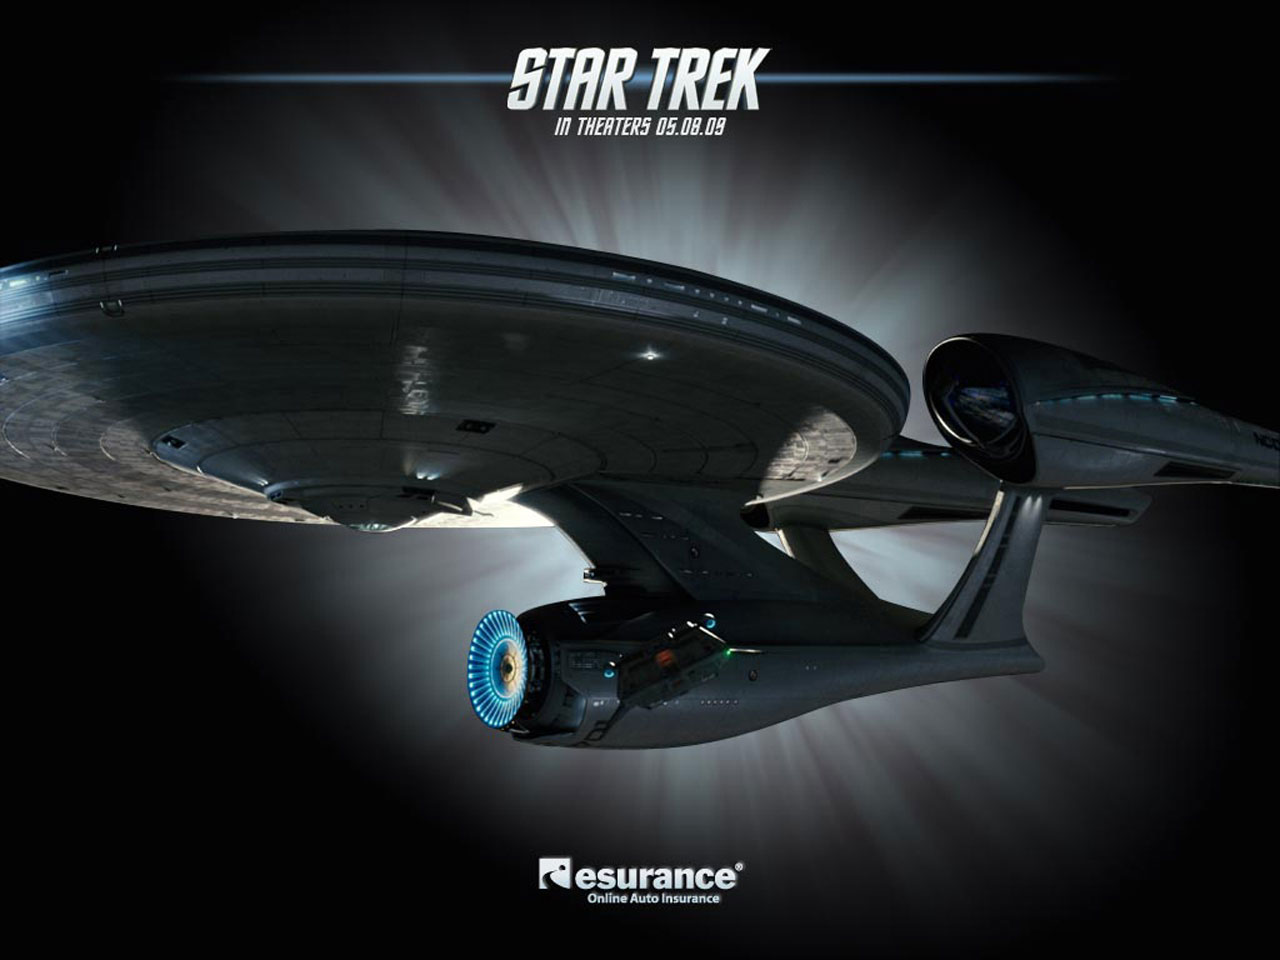 Star Trek 2009 Wallpaper 1280x960 star trek 2009 1280x960